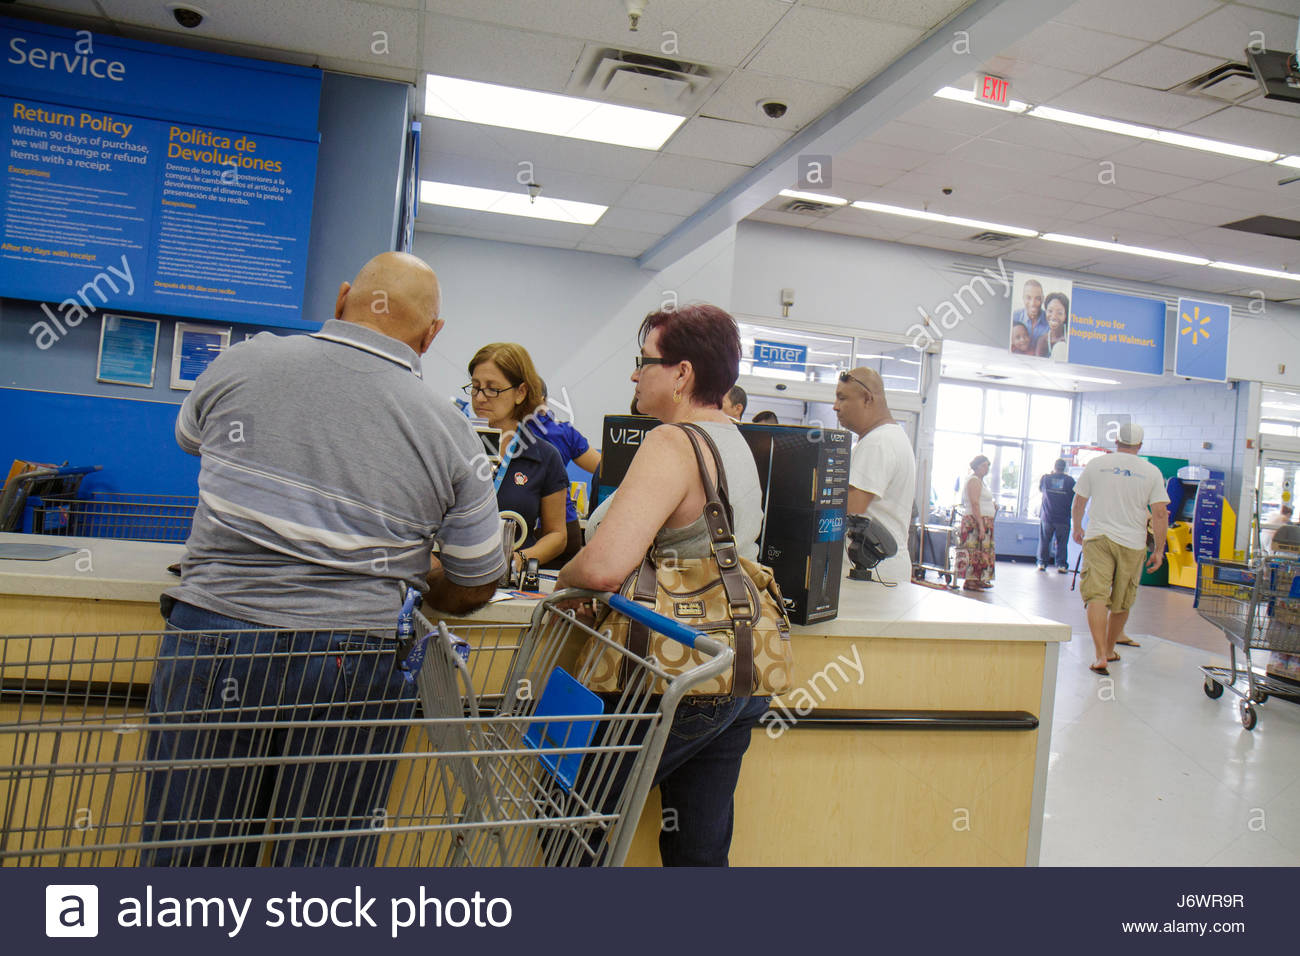 walmart customer service desk